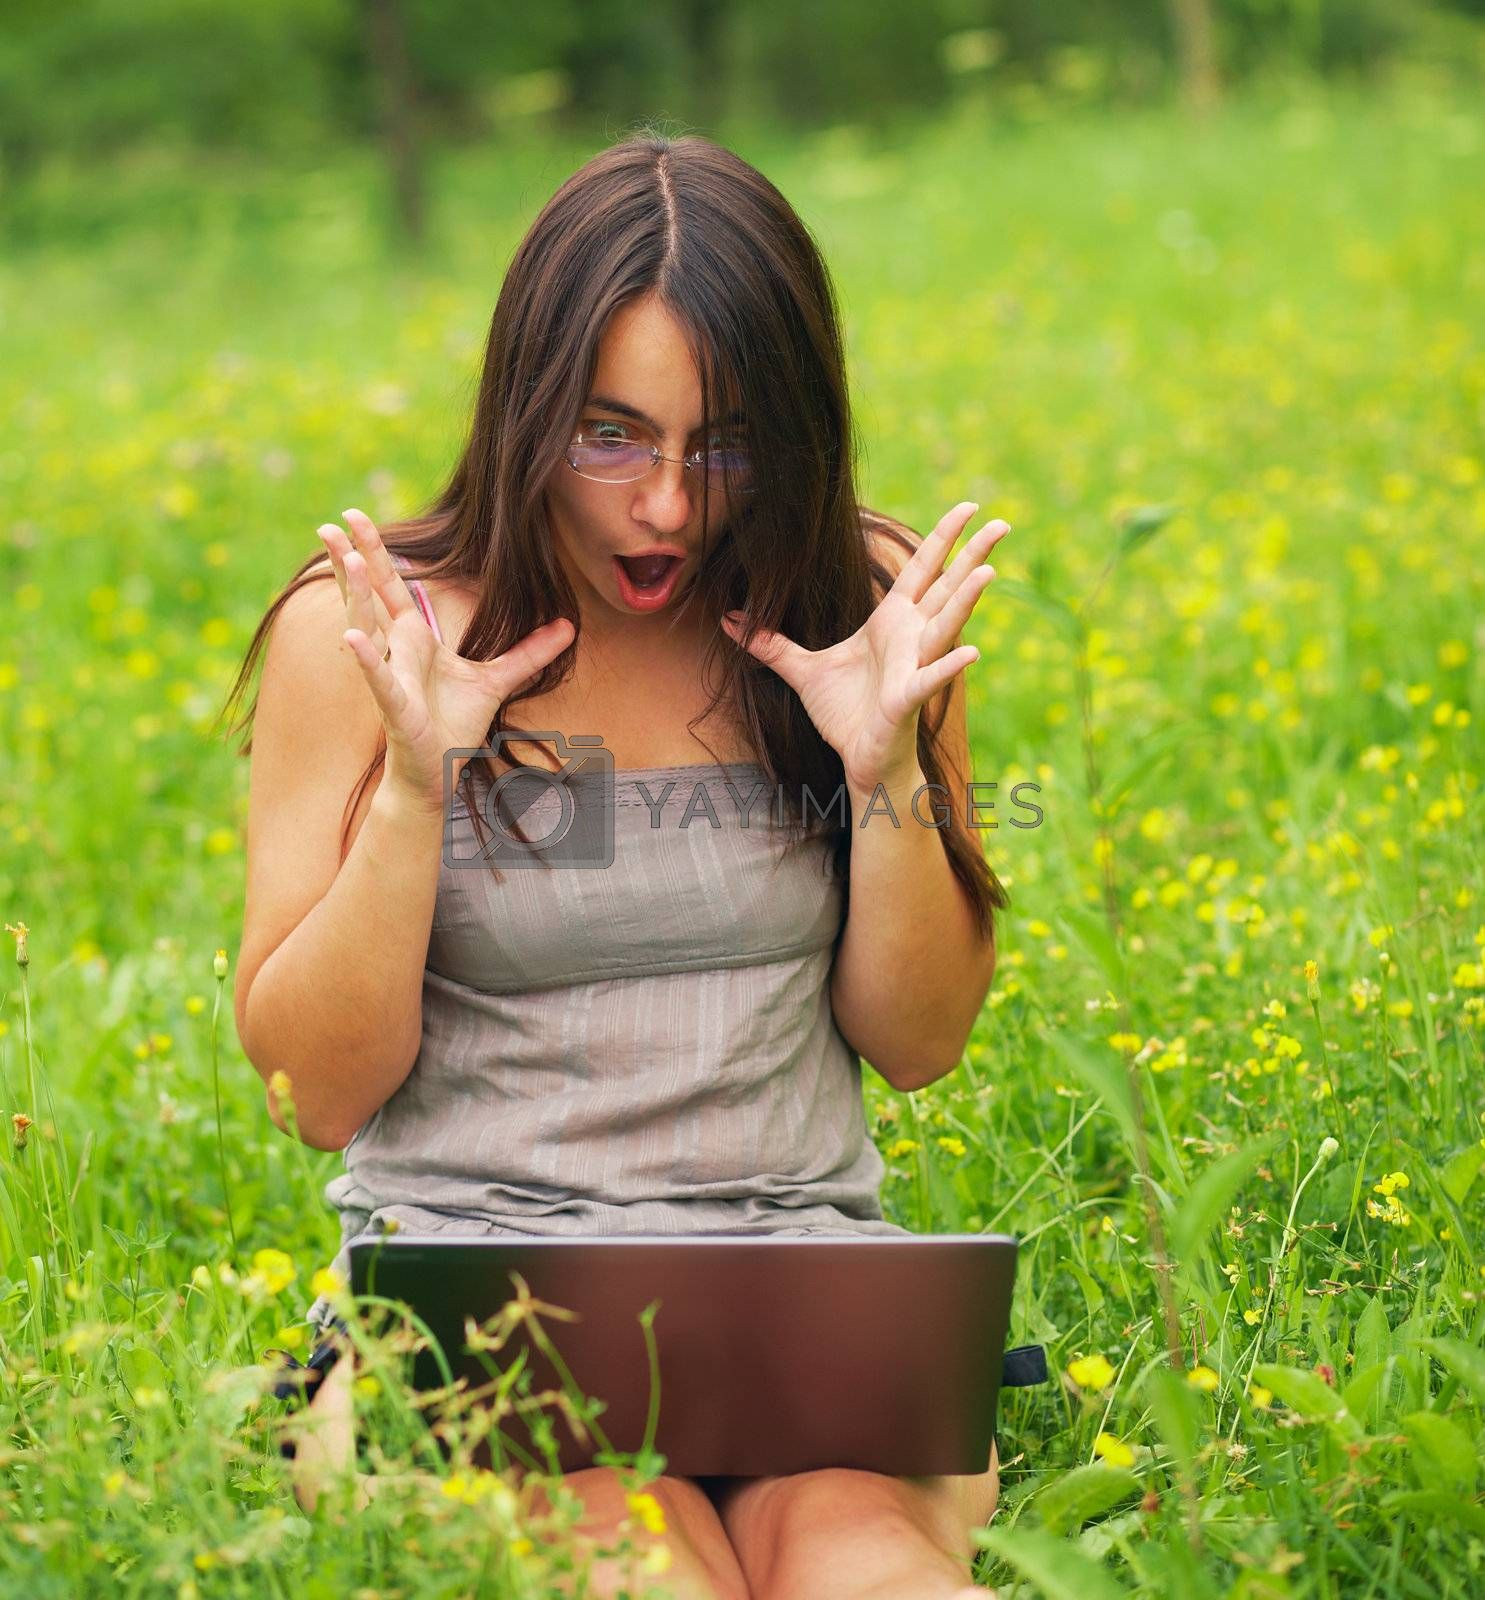 Shocked Young woman using her laptop outdoors.